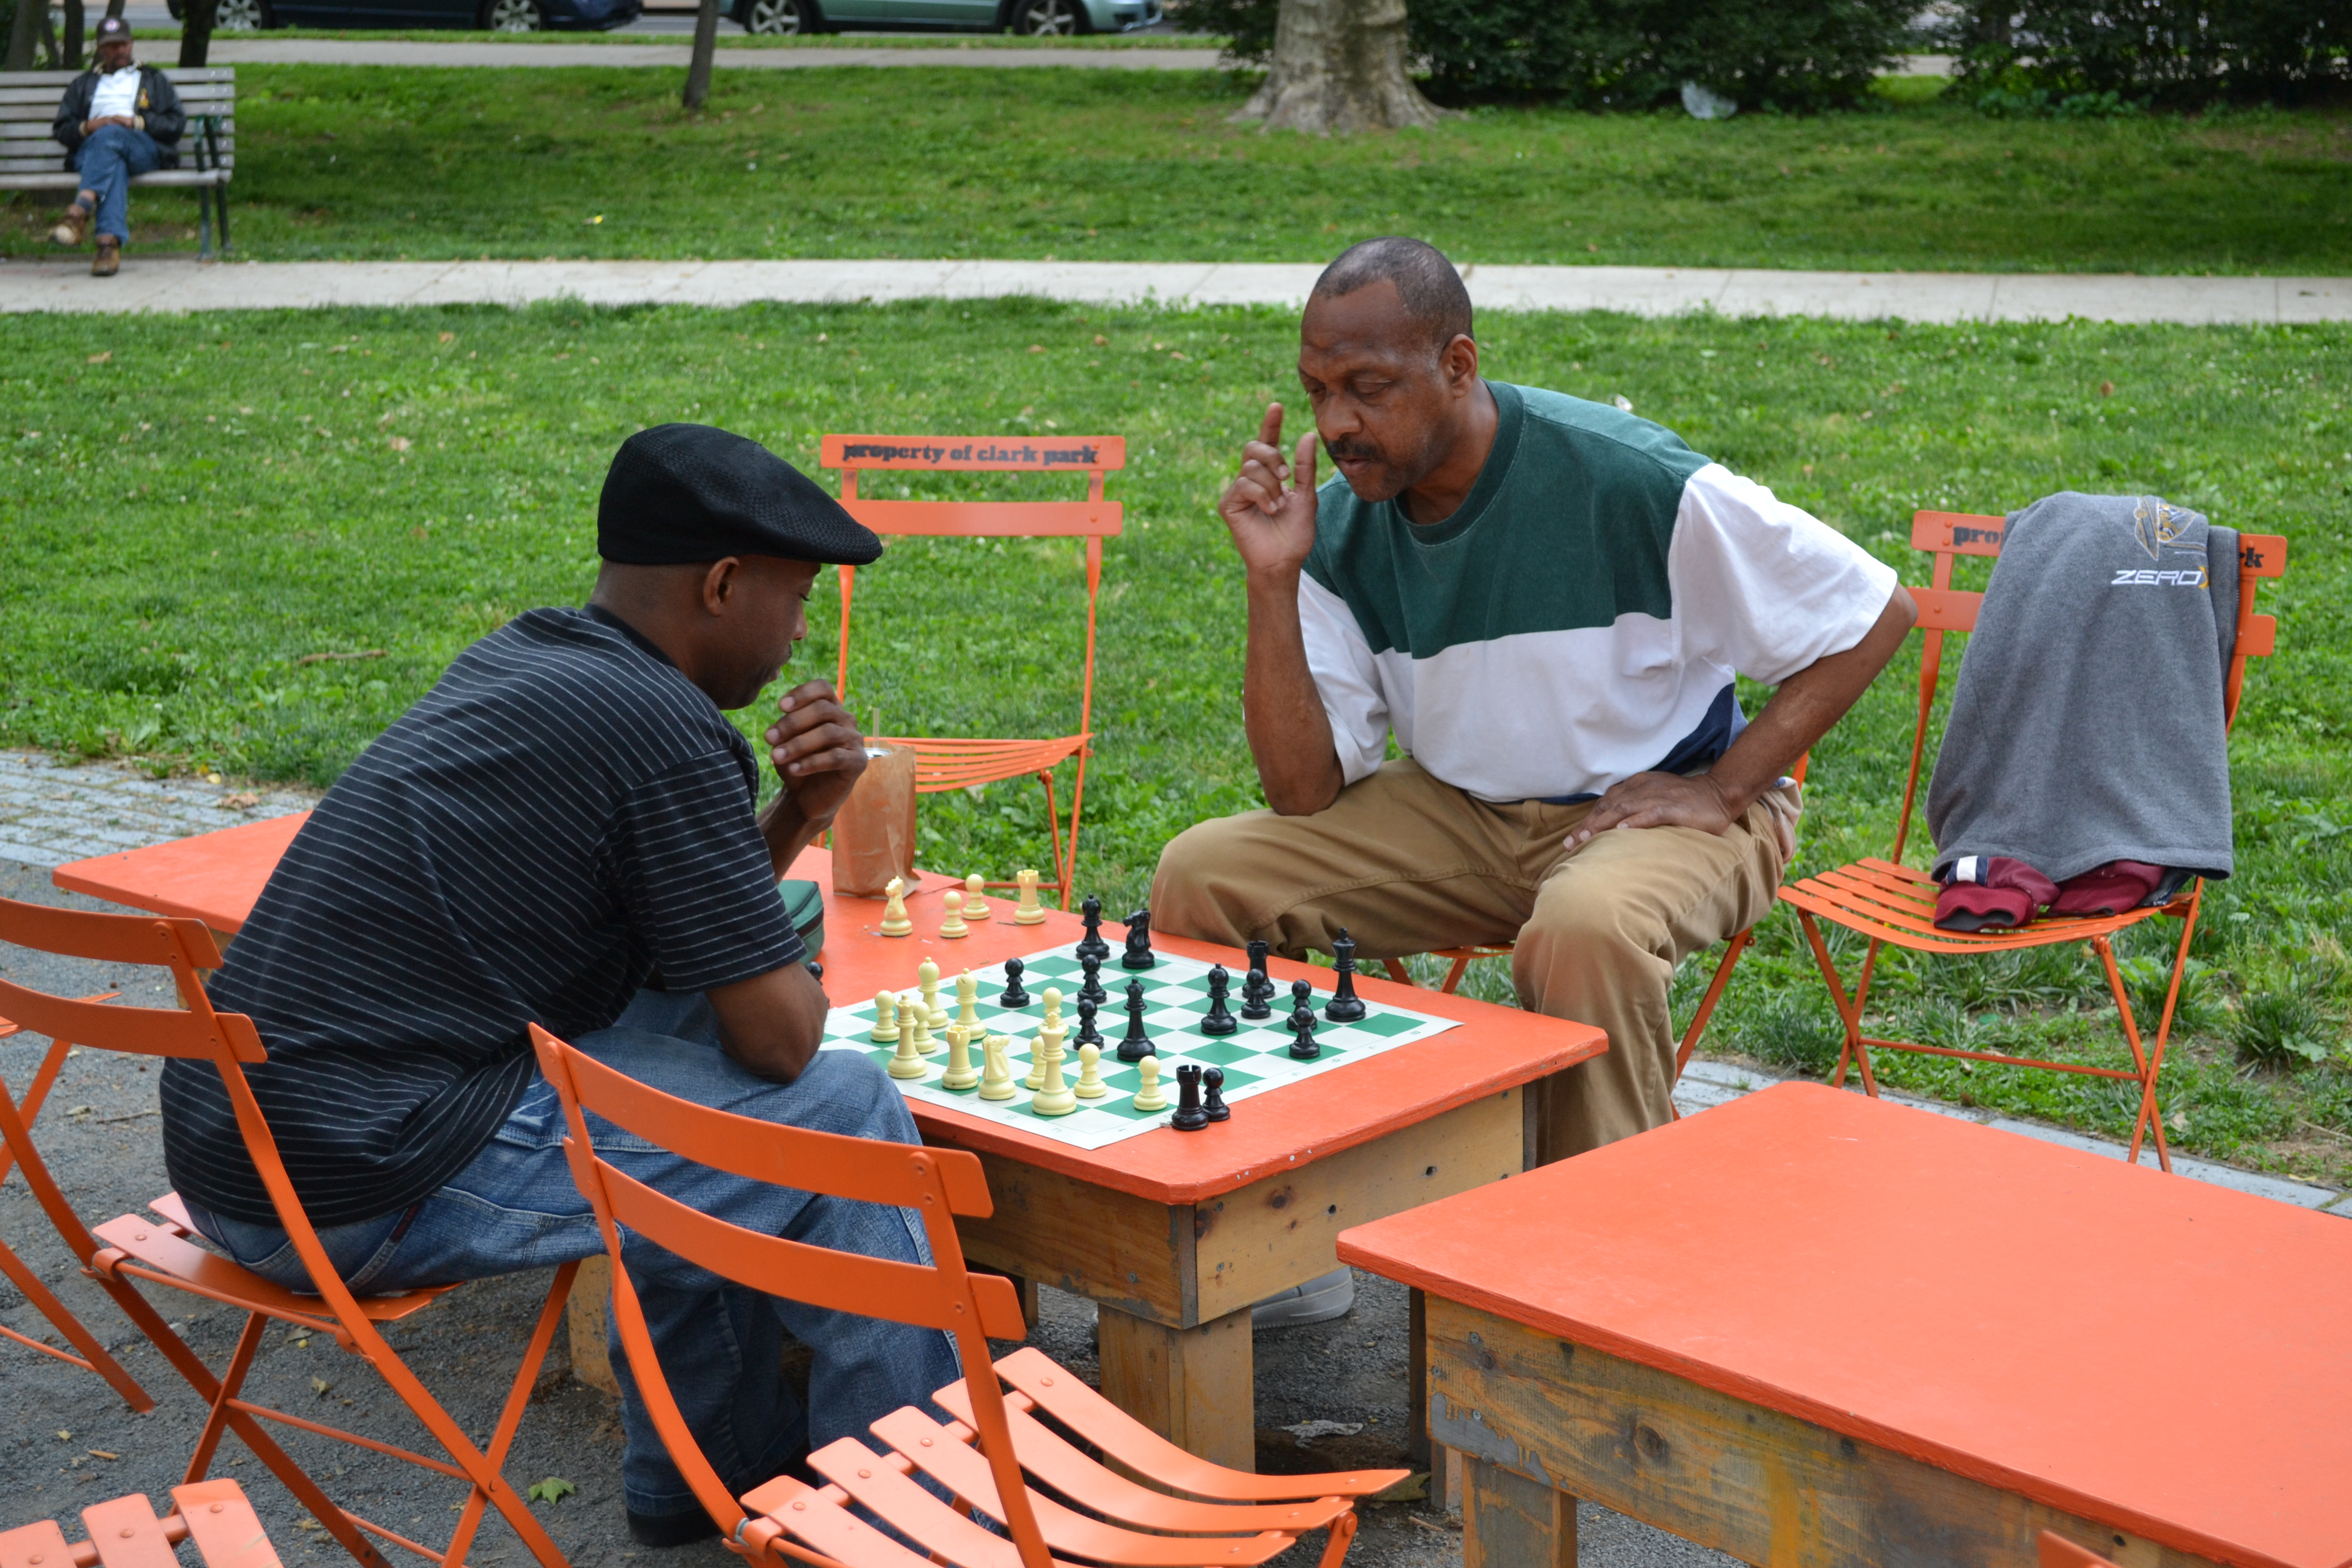 A chess game captivated some park goers